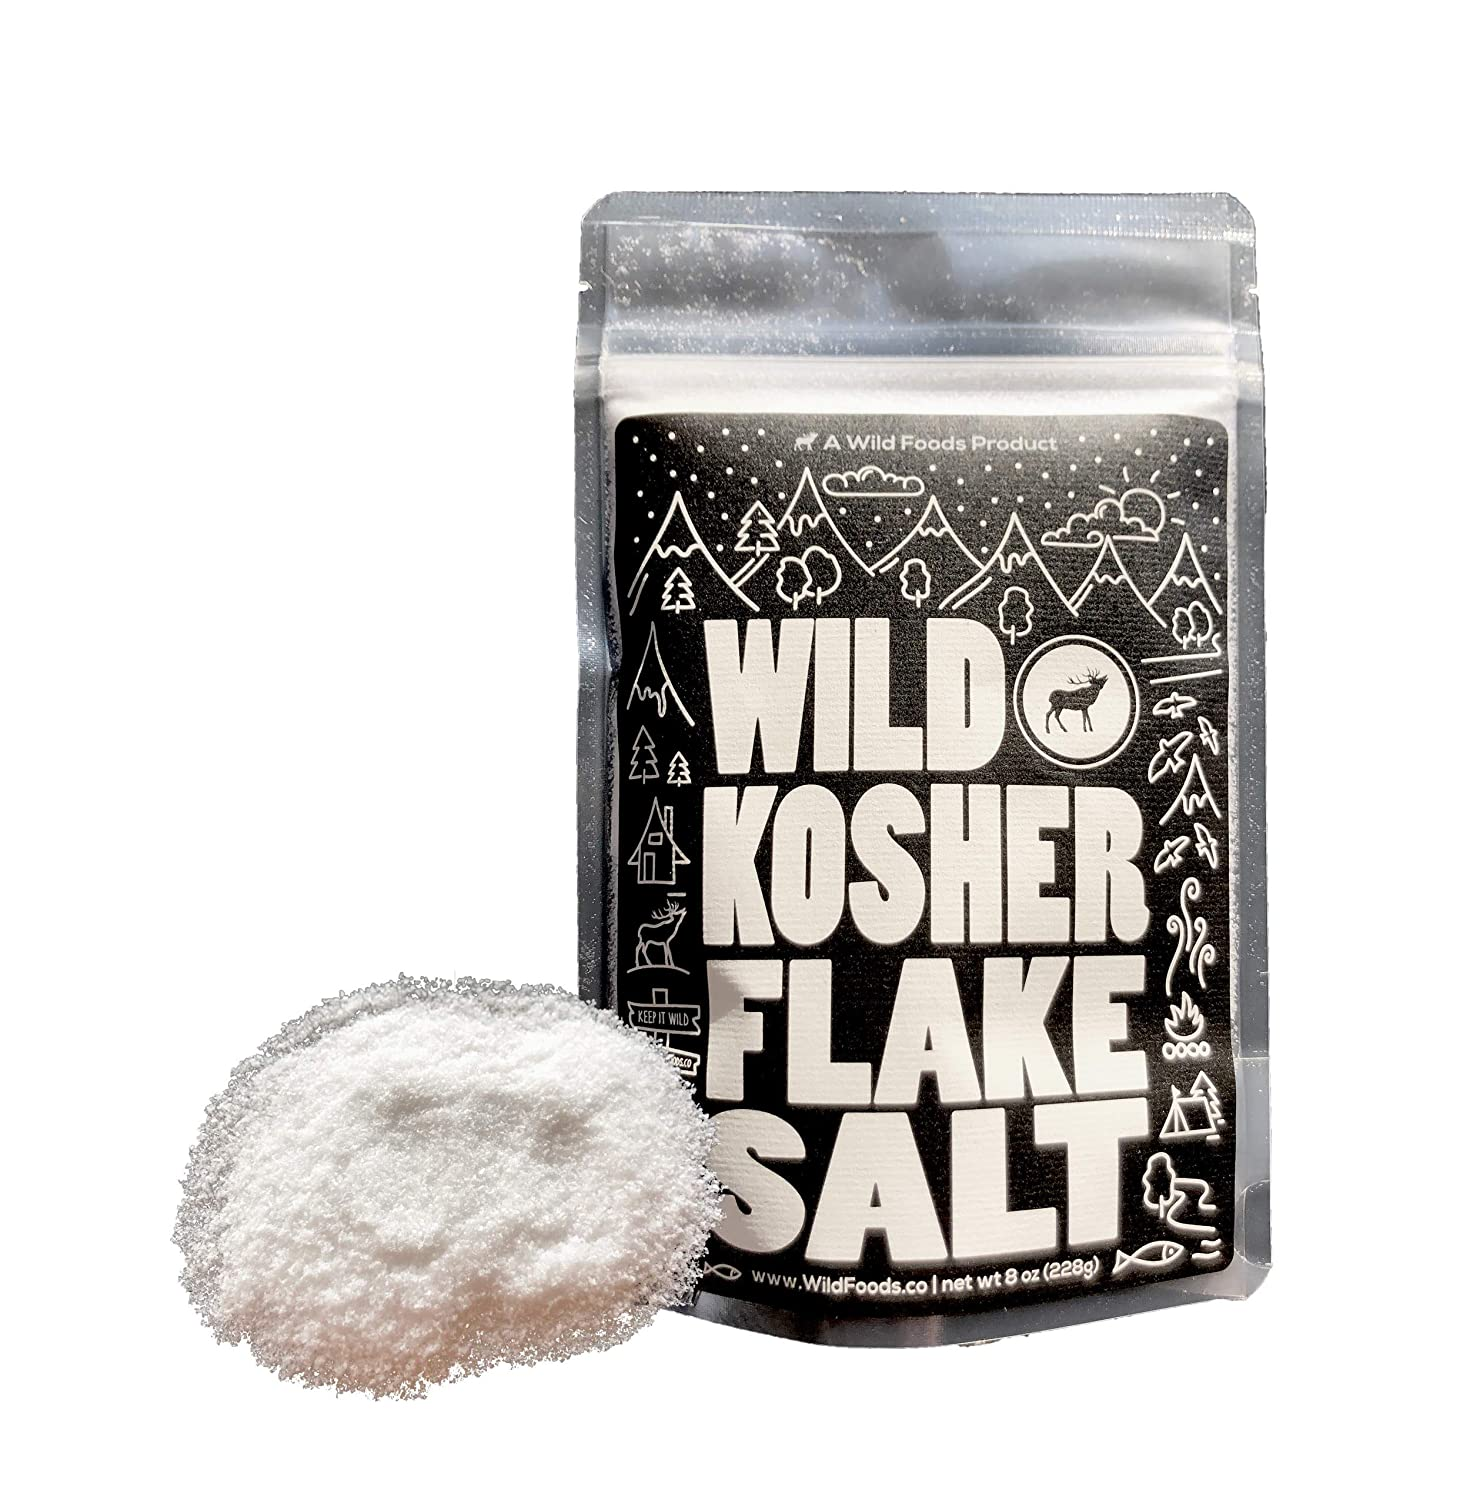 Kosher Fine Flake Sea Salt by Wild Foods, Unrefined, 100% Natural, Pacific Ocean Harvested Sea Salt for Cooking, Marinating, Brining, Finishing Healthy Recipes (8 ounce)